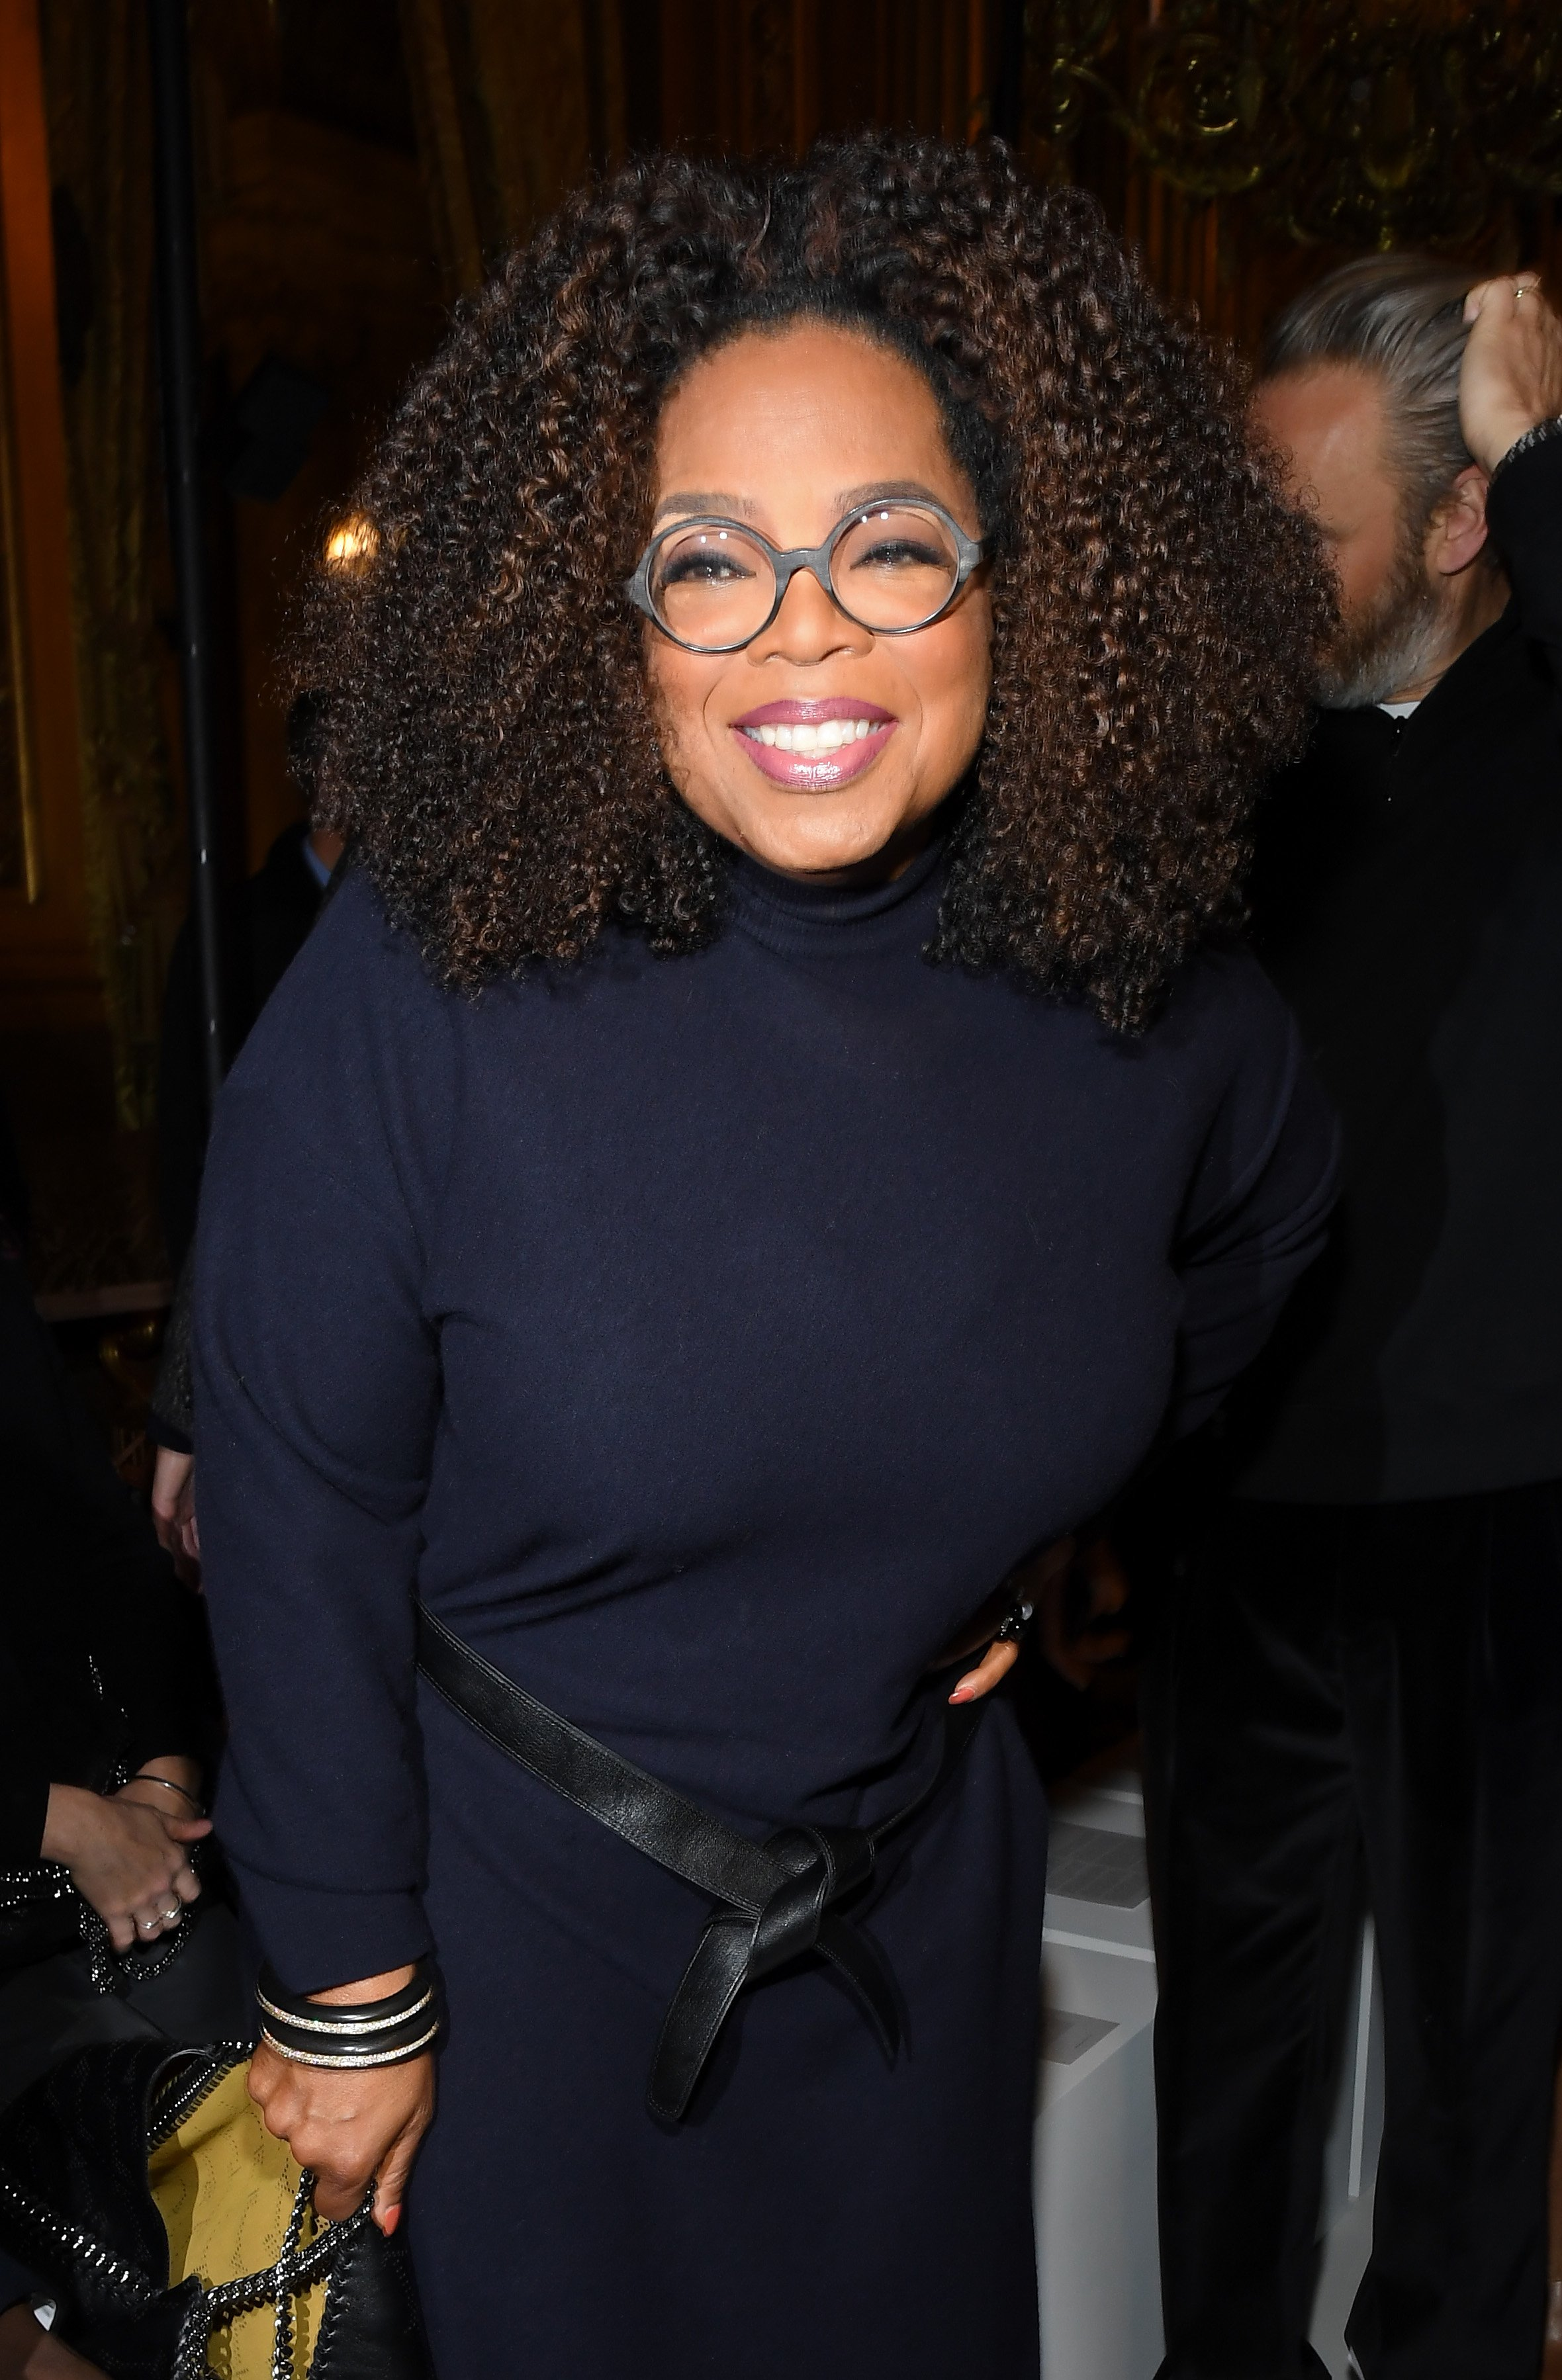 Oprah Winfrey on March 04, 2019 in Paris, France | Photo: Getty Images